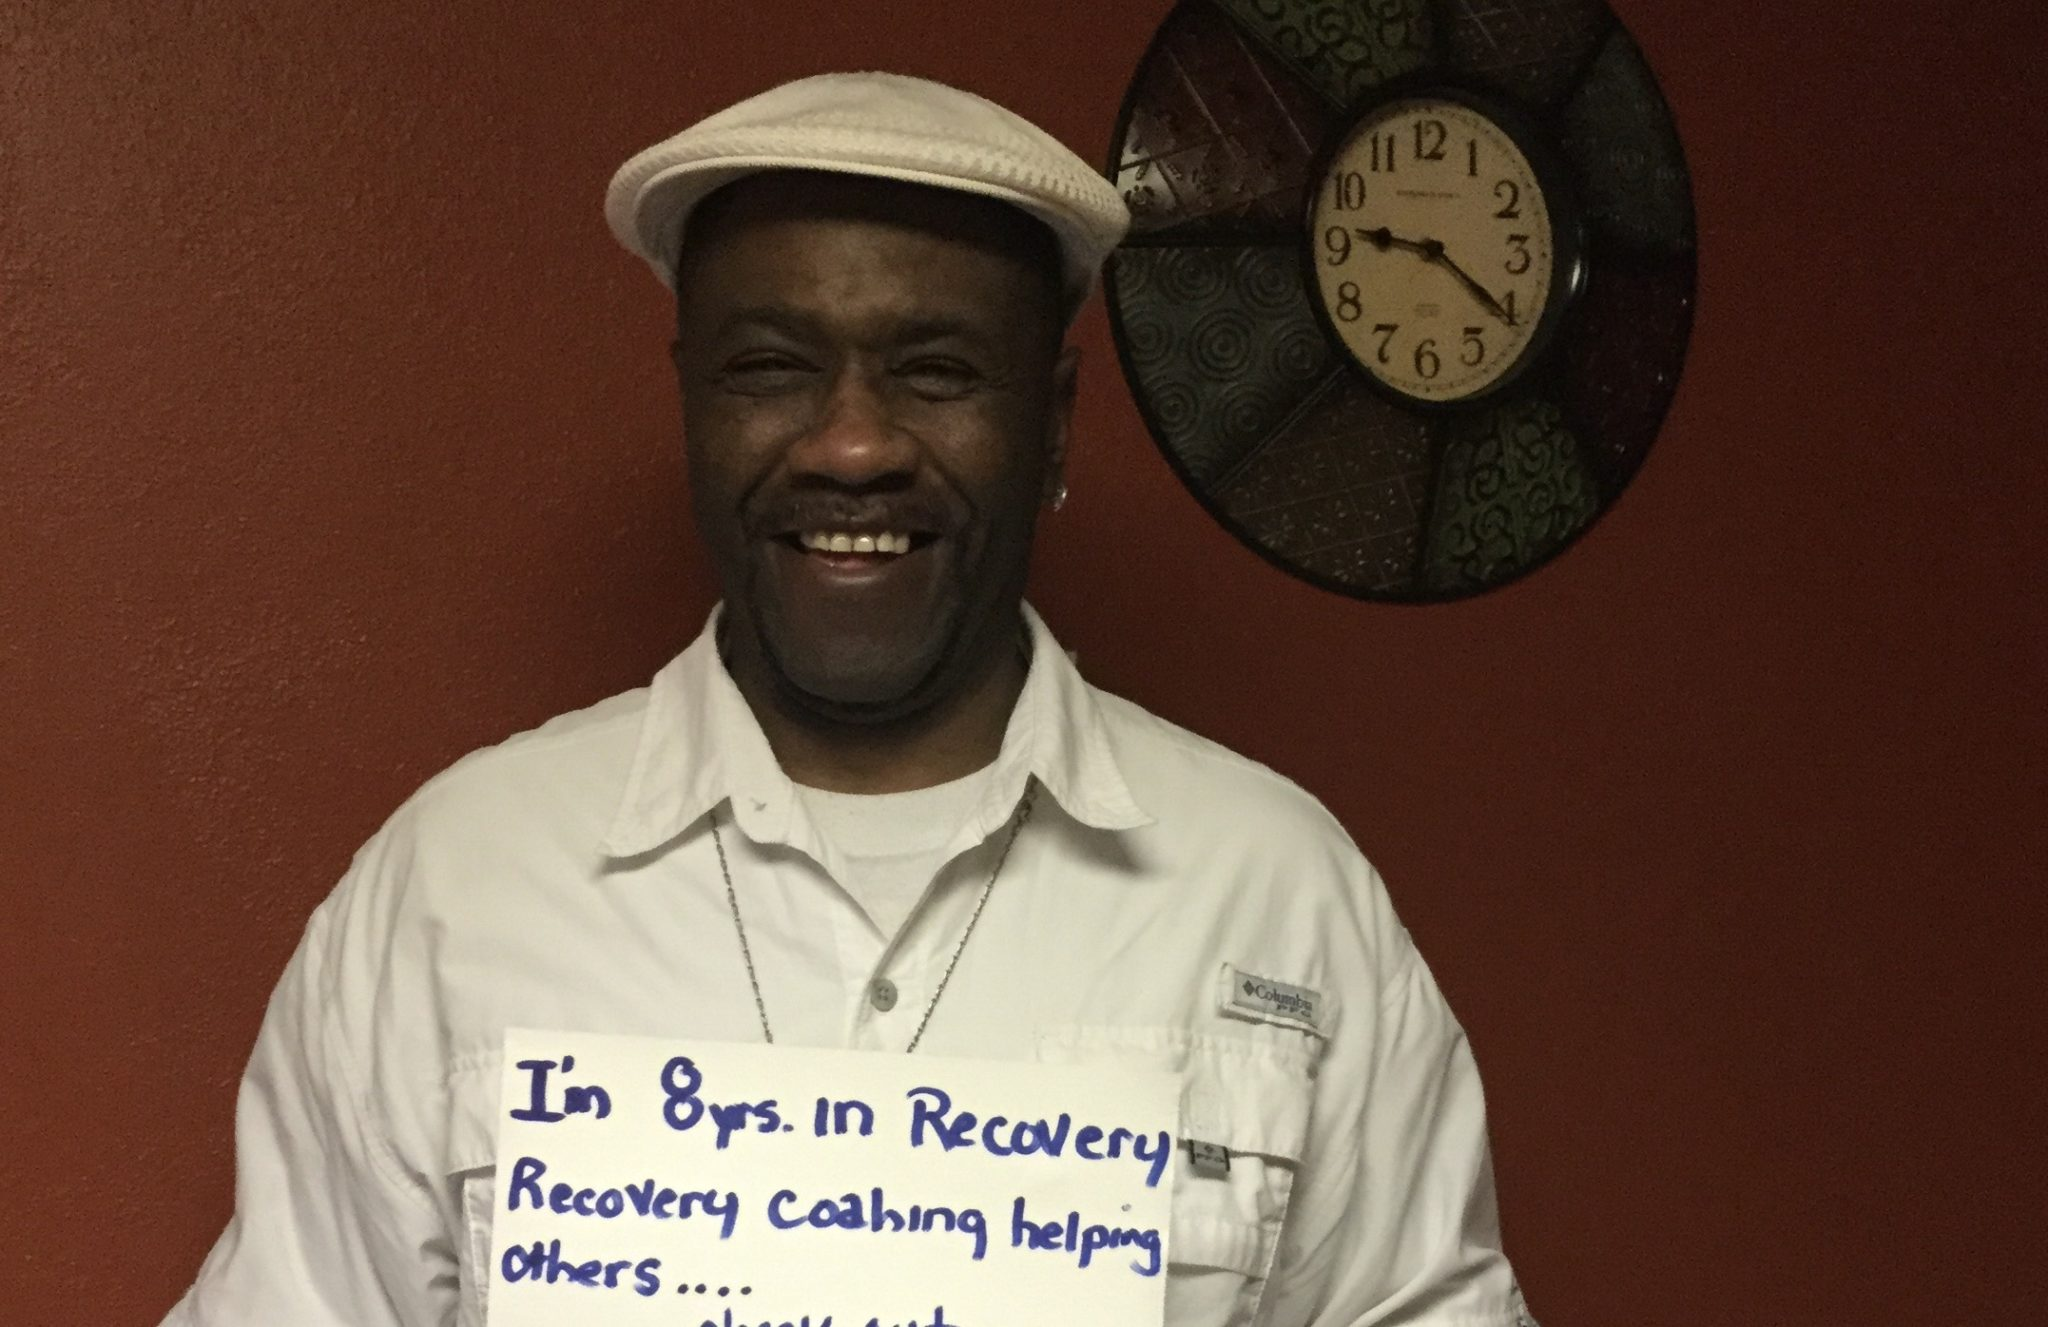 At 8 Years Sober I'm Still Helping Others